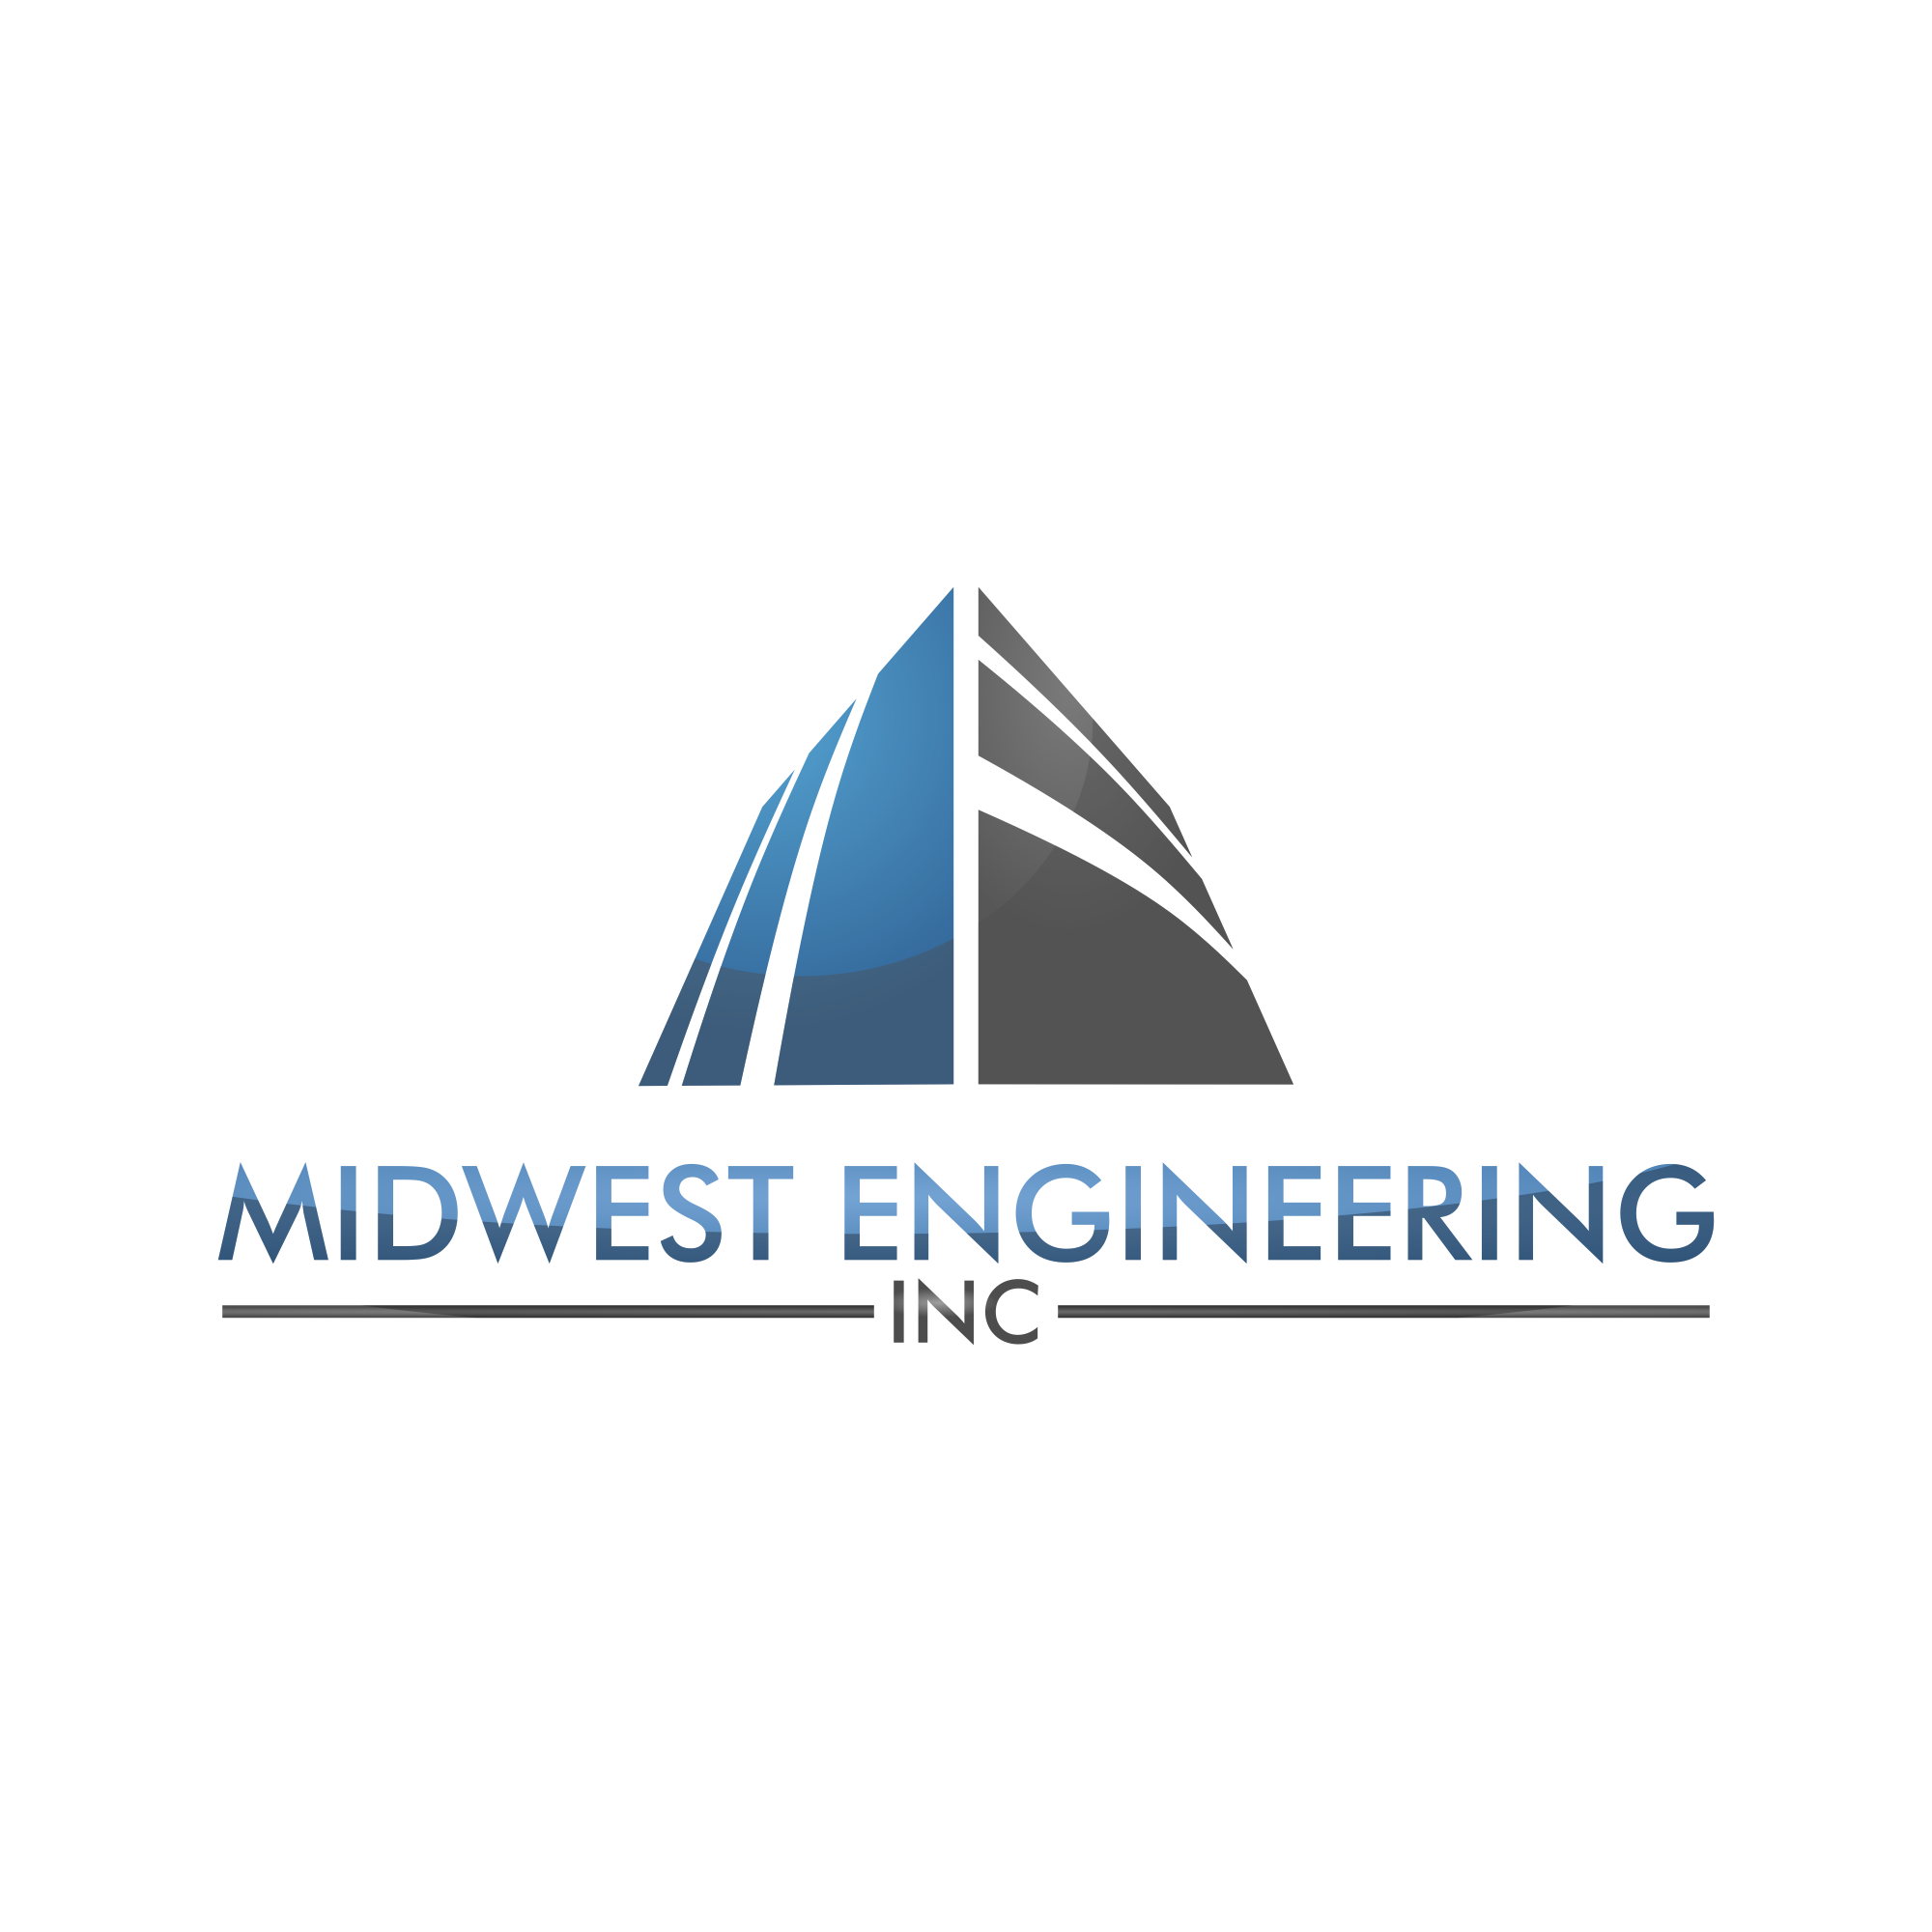 Creating a new logo for a new engineering company